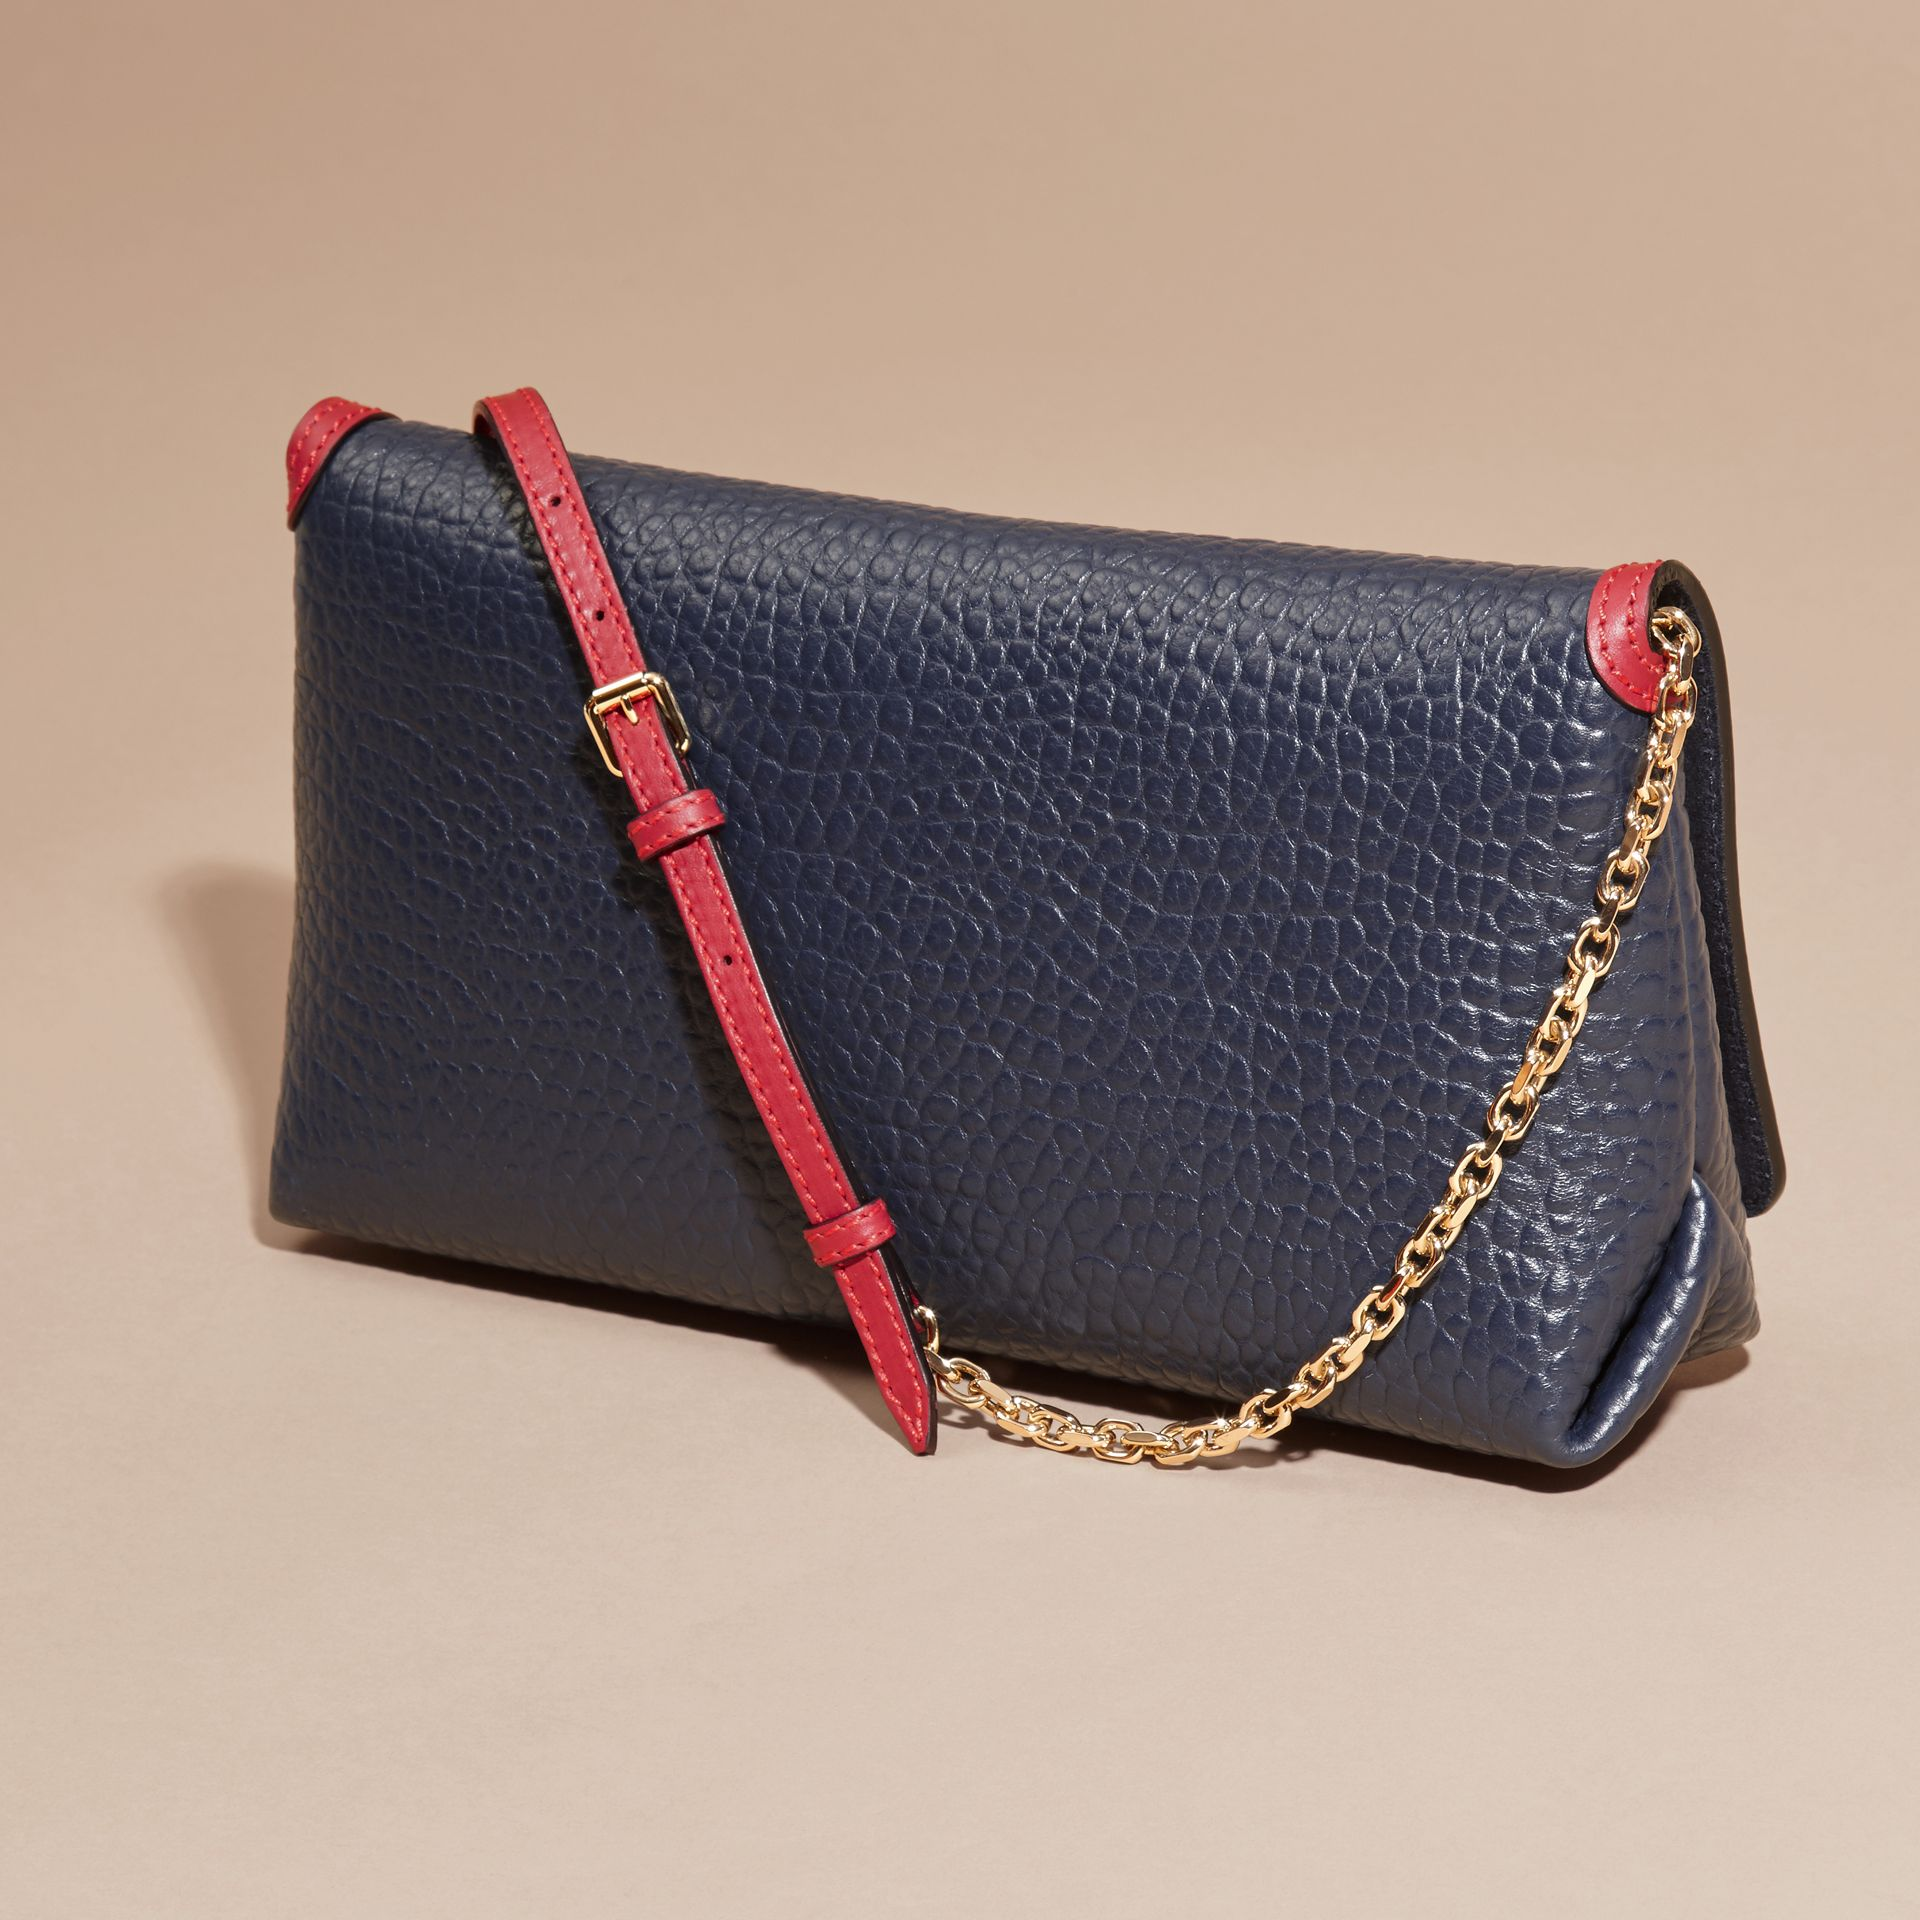 Blue carbon/parade red Medium Contrast Border Signature Grain Leather Clutch Bag - gallery image 3